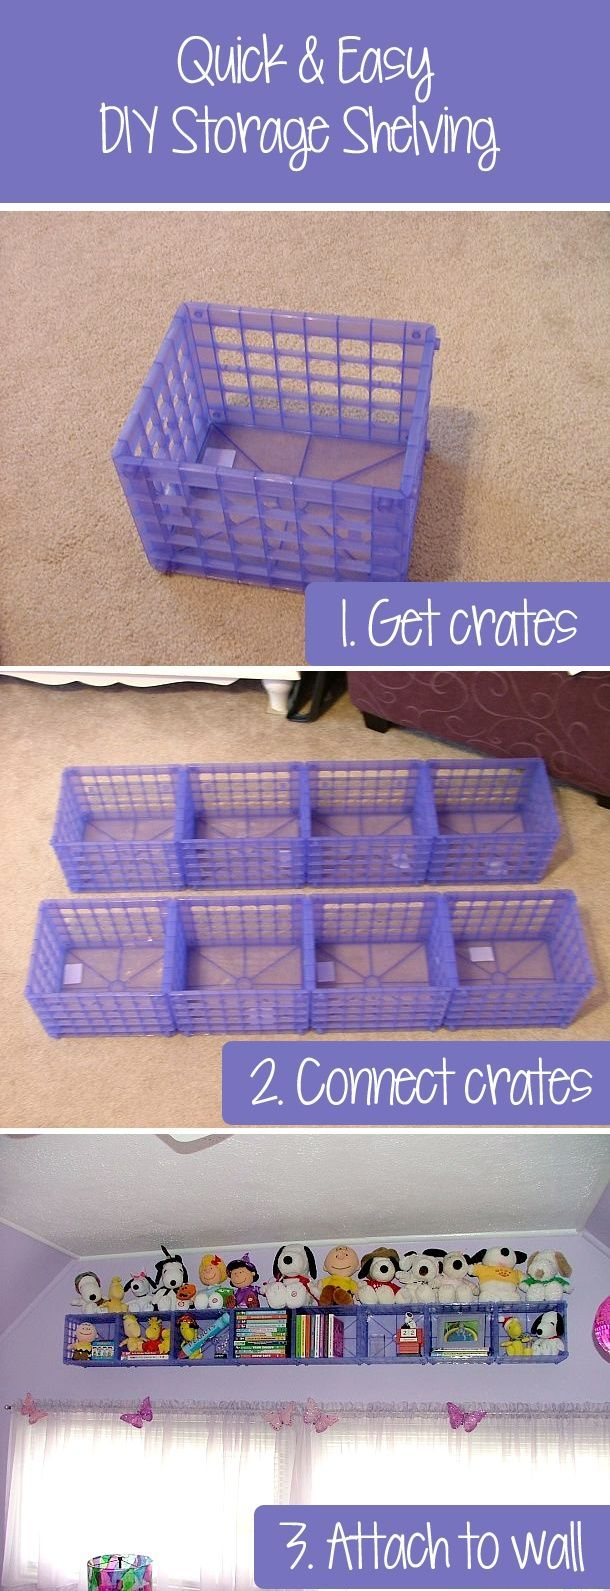 "Dollar Store Organizing Ideas • Lot's of simple and inexpensive ideas, and tutorials, including this quick and easy dollar store shelving idea from '""Diane"" on Hometalk'!"